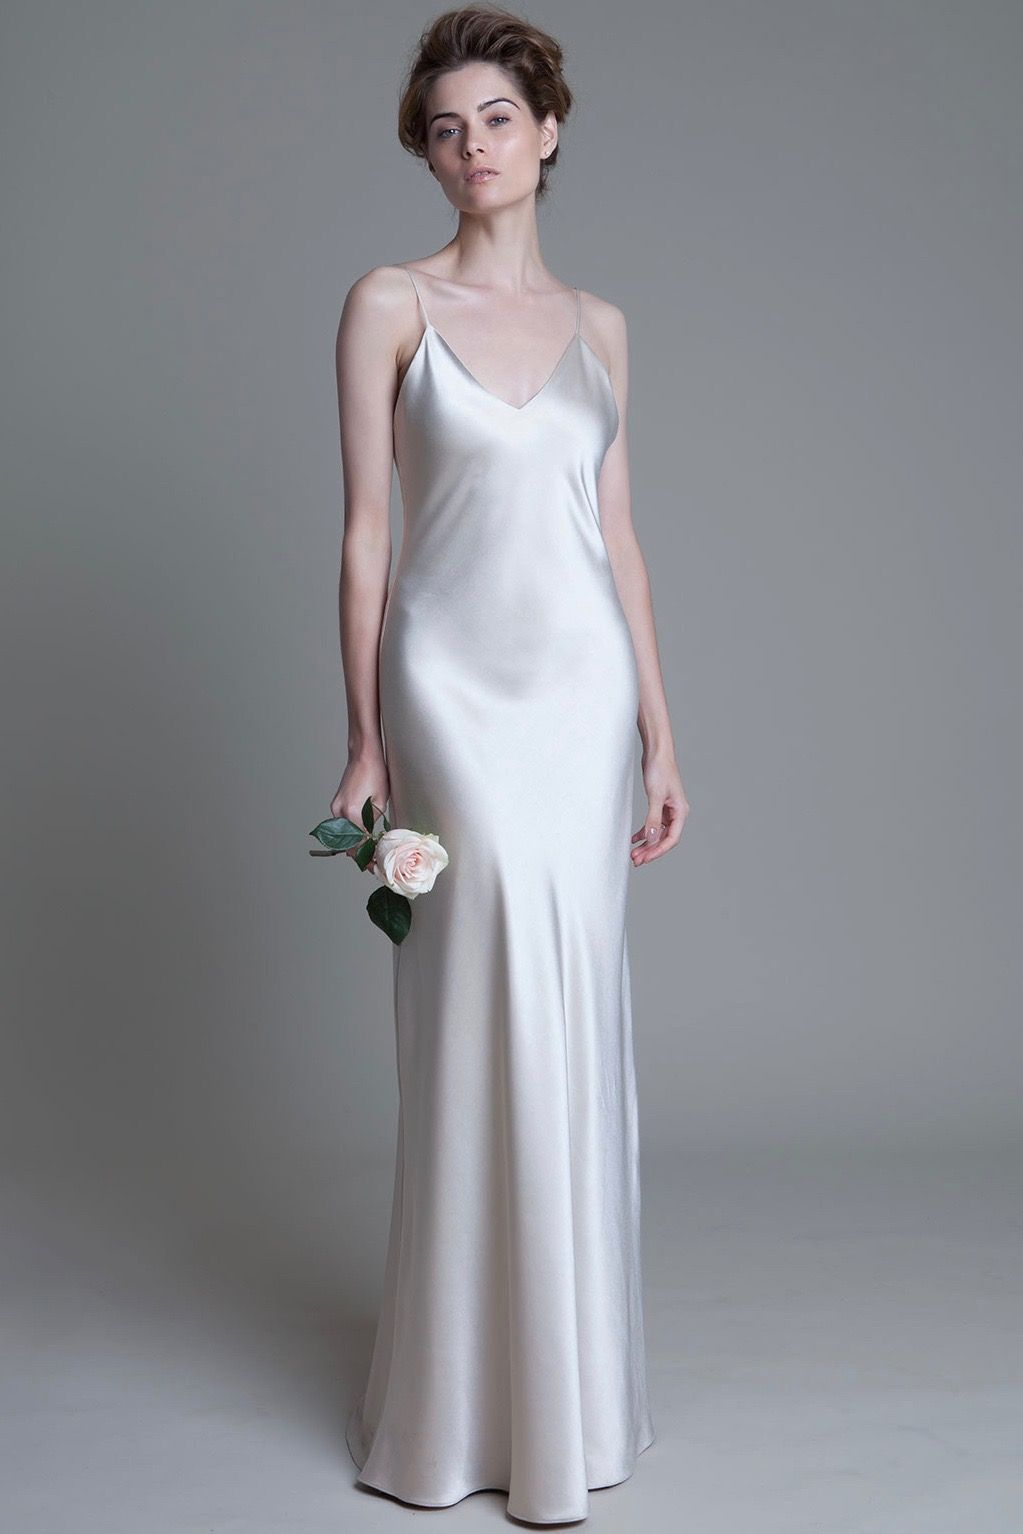 Pin by organic minimalist wedding on simple gowns pinterest